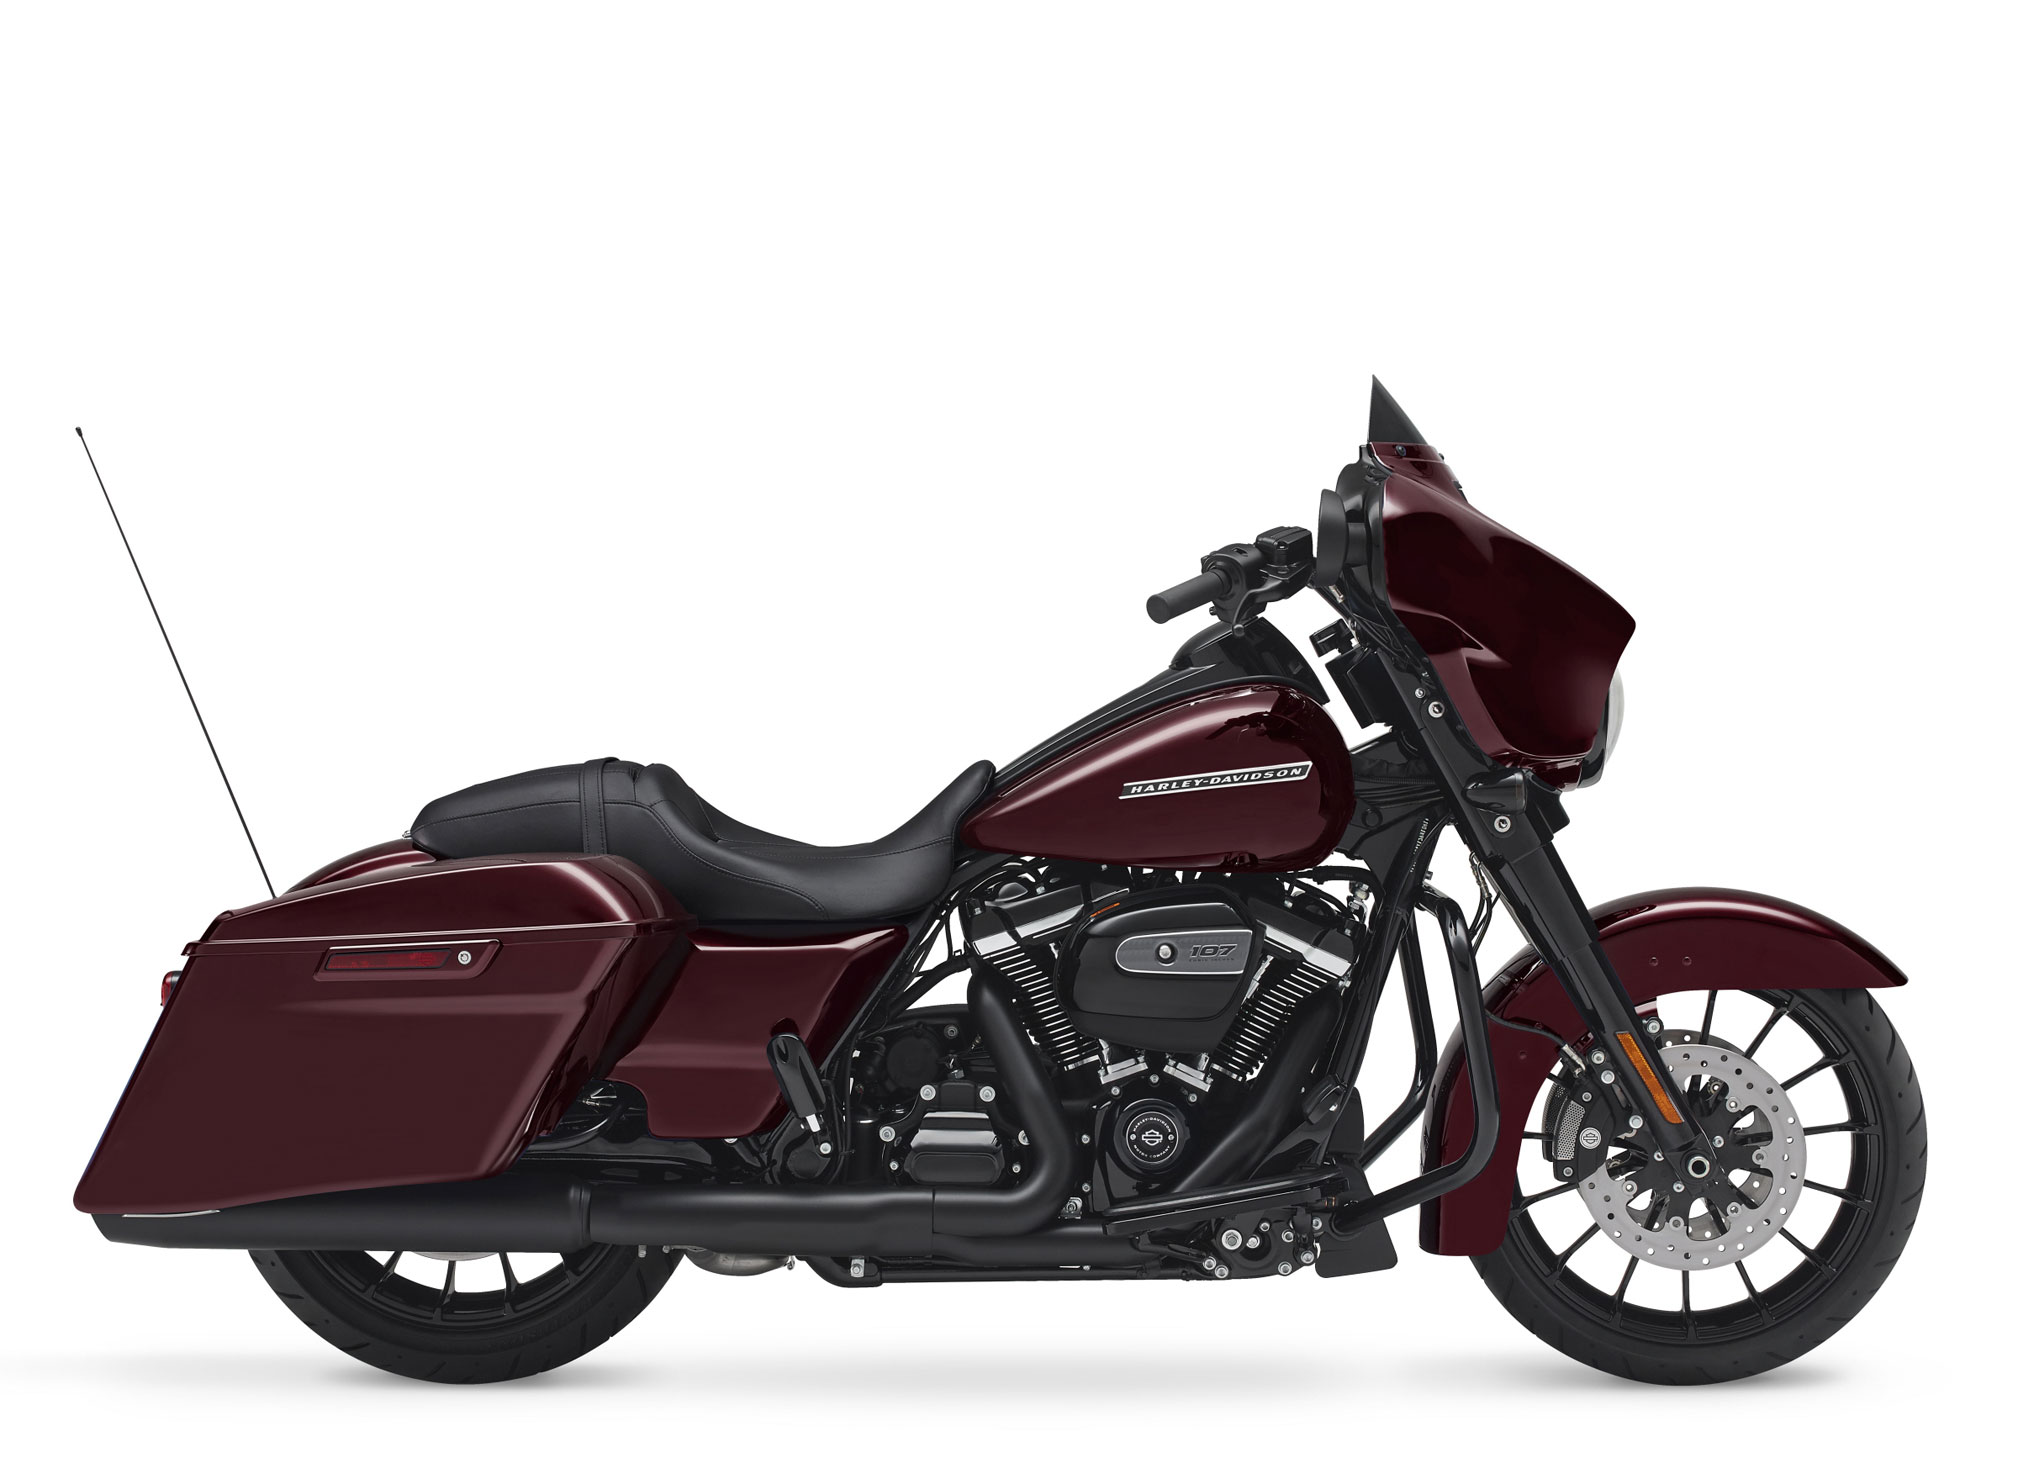 2018 harley davidson street glide special review totalmotorcycle. Black Bedroom Furniture Sets. Home Design Ideas